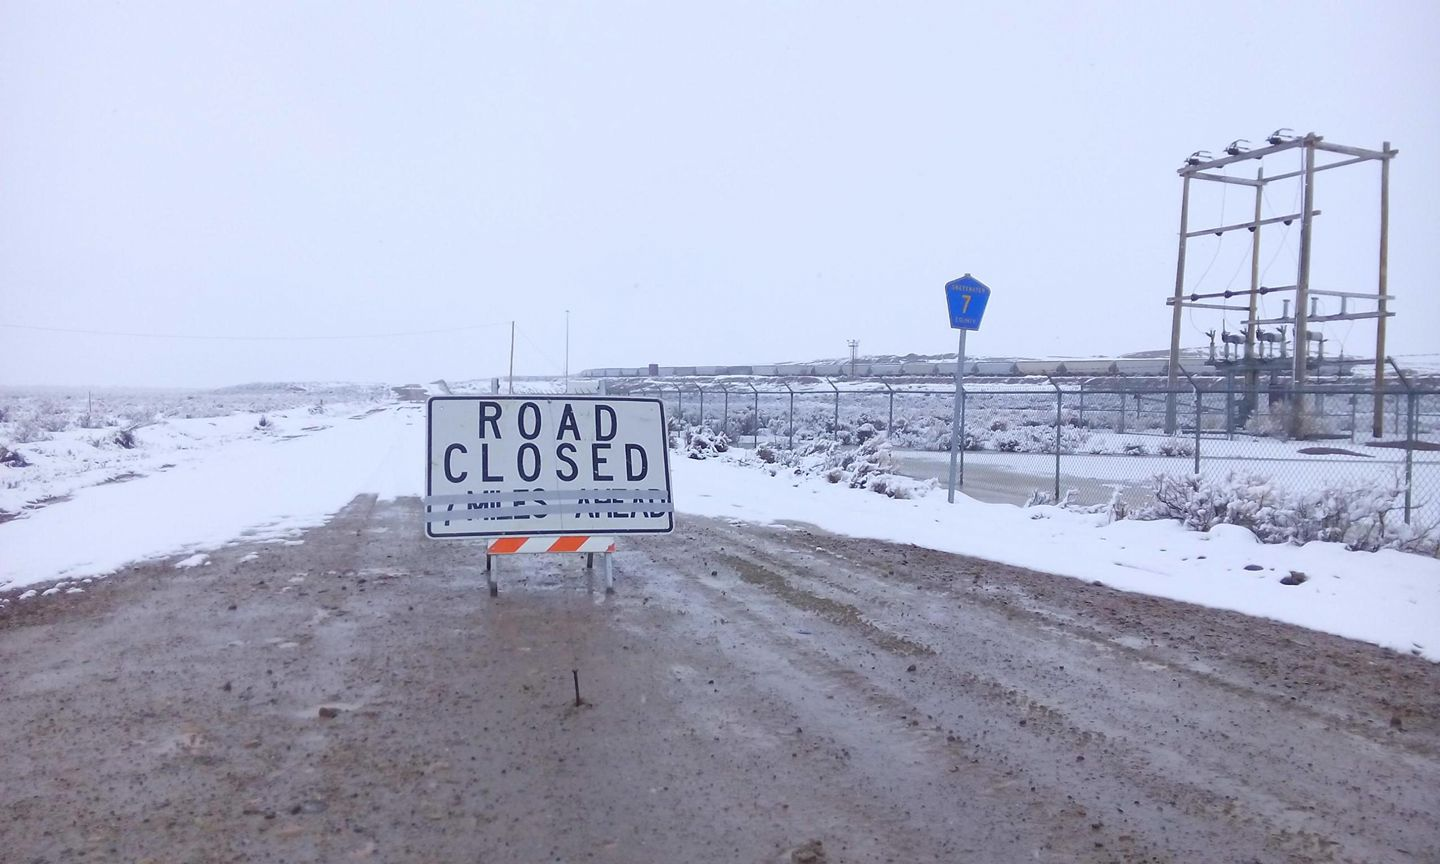 Sheriff's Office Issues Travel Advisories on Several County Roads